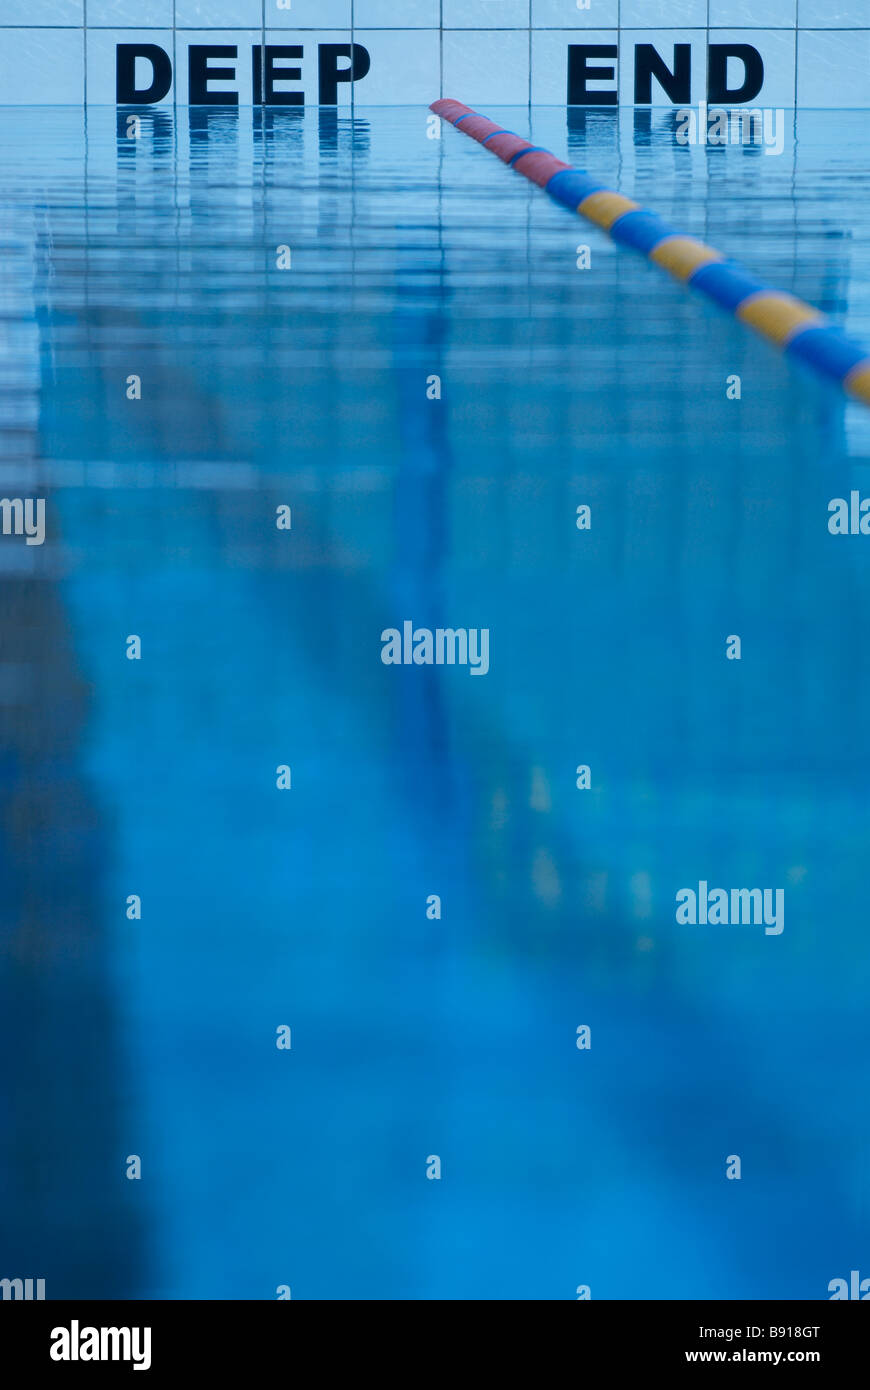 Deep end of swimming pool stock photo royalty free image 22770968 alamy for How deep is a olympic swimming pool